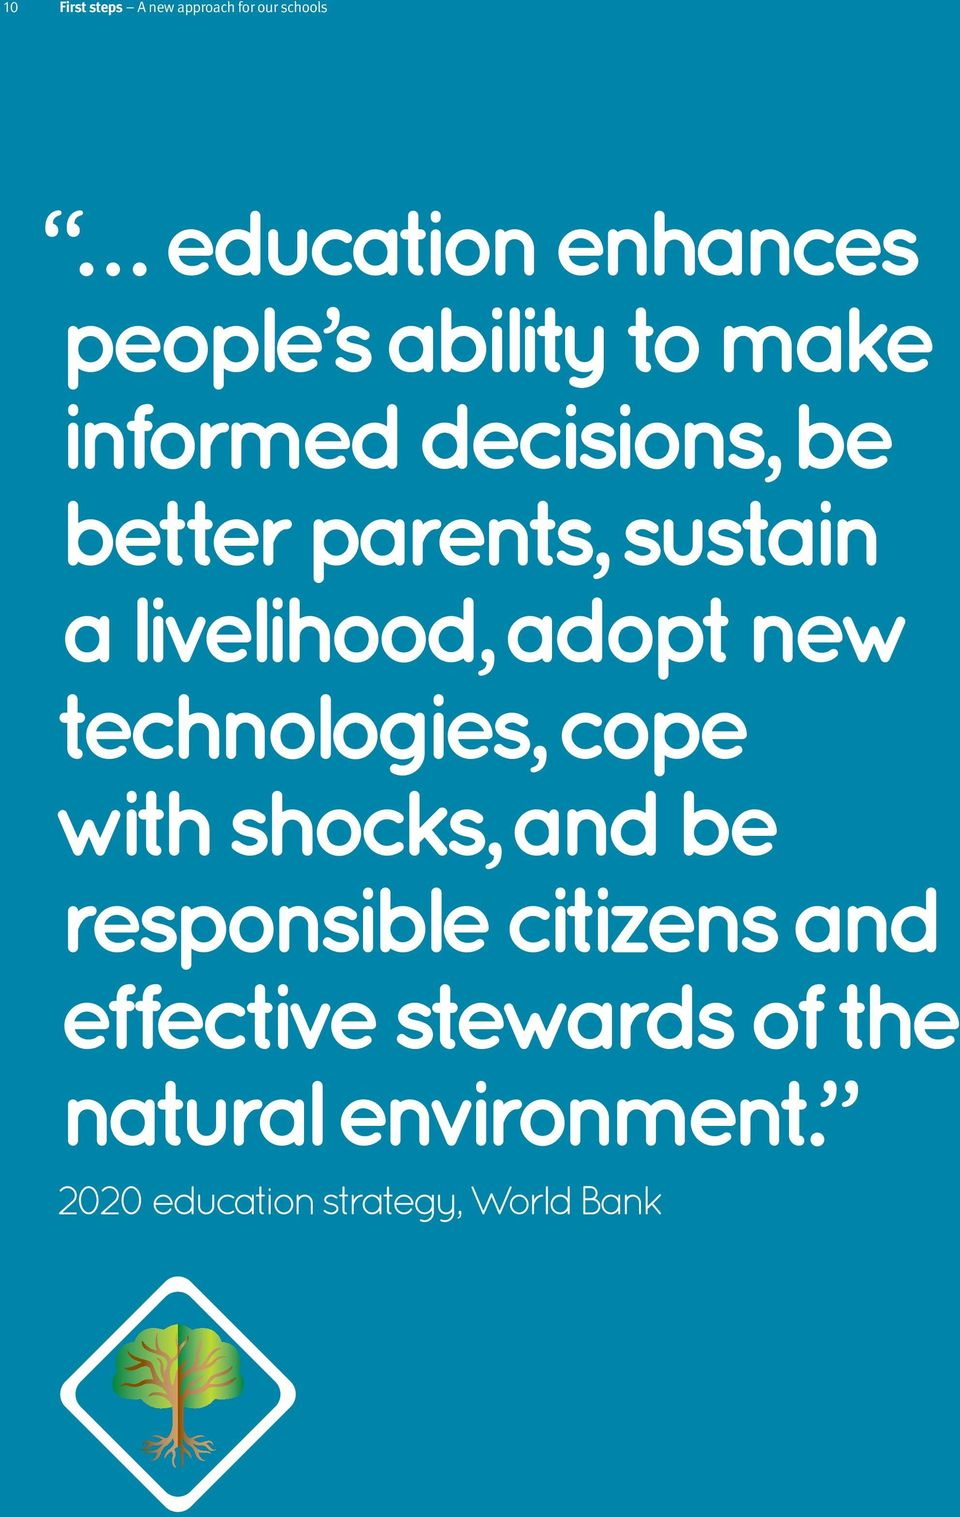 adopt new technologies, cope with shocks, and be responsible citizens and